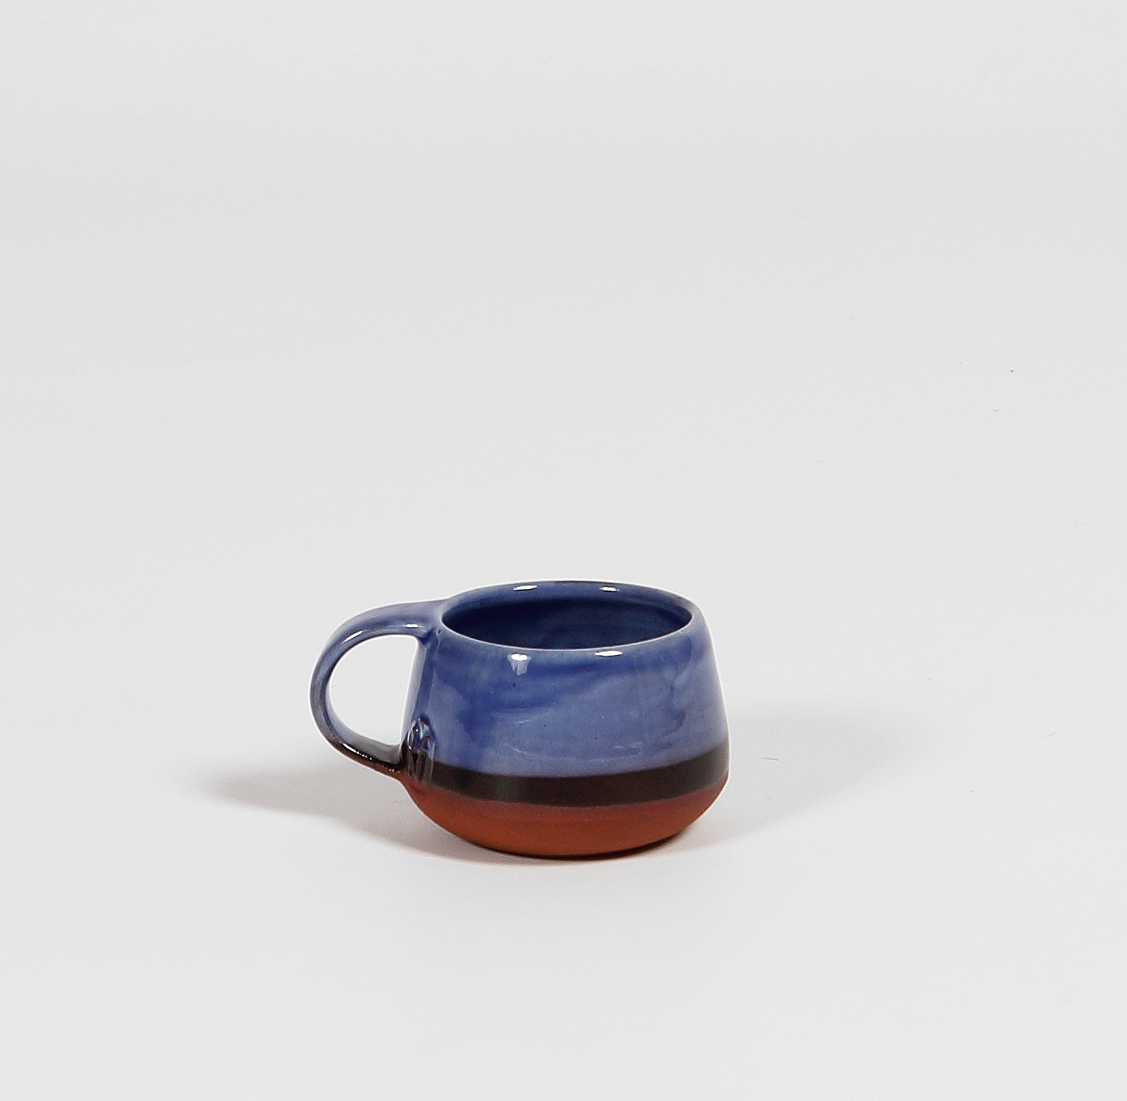 Helen Faulkner espresso cup, €12, available at makersandbrothers.com